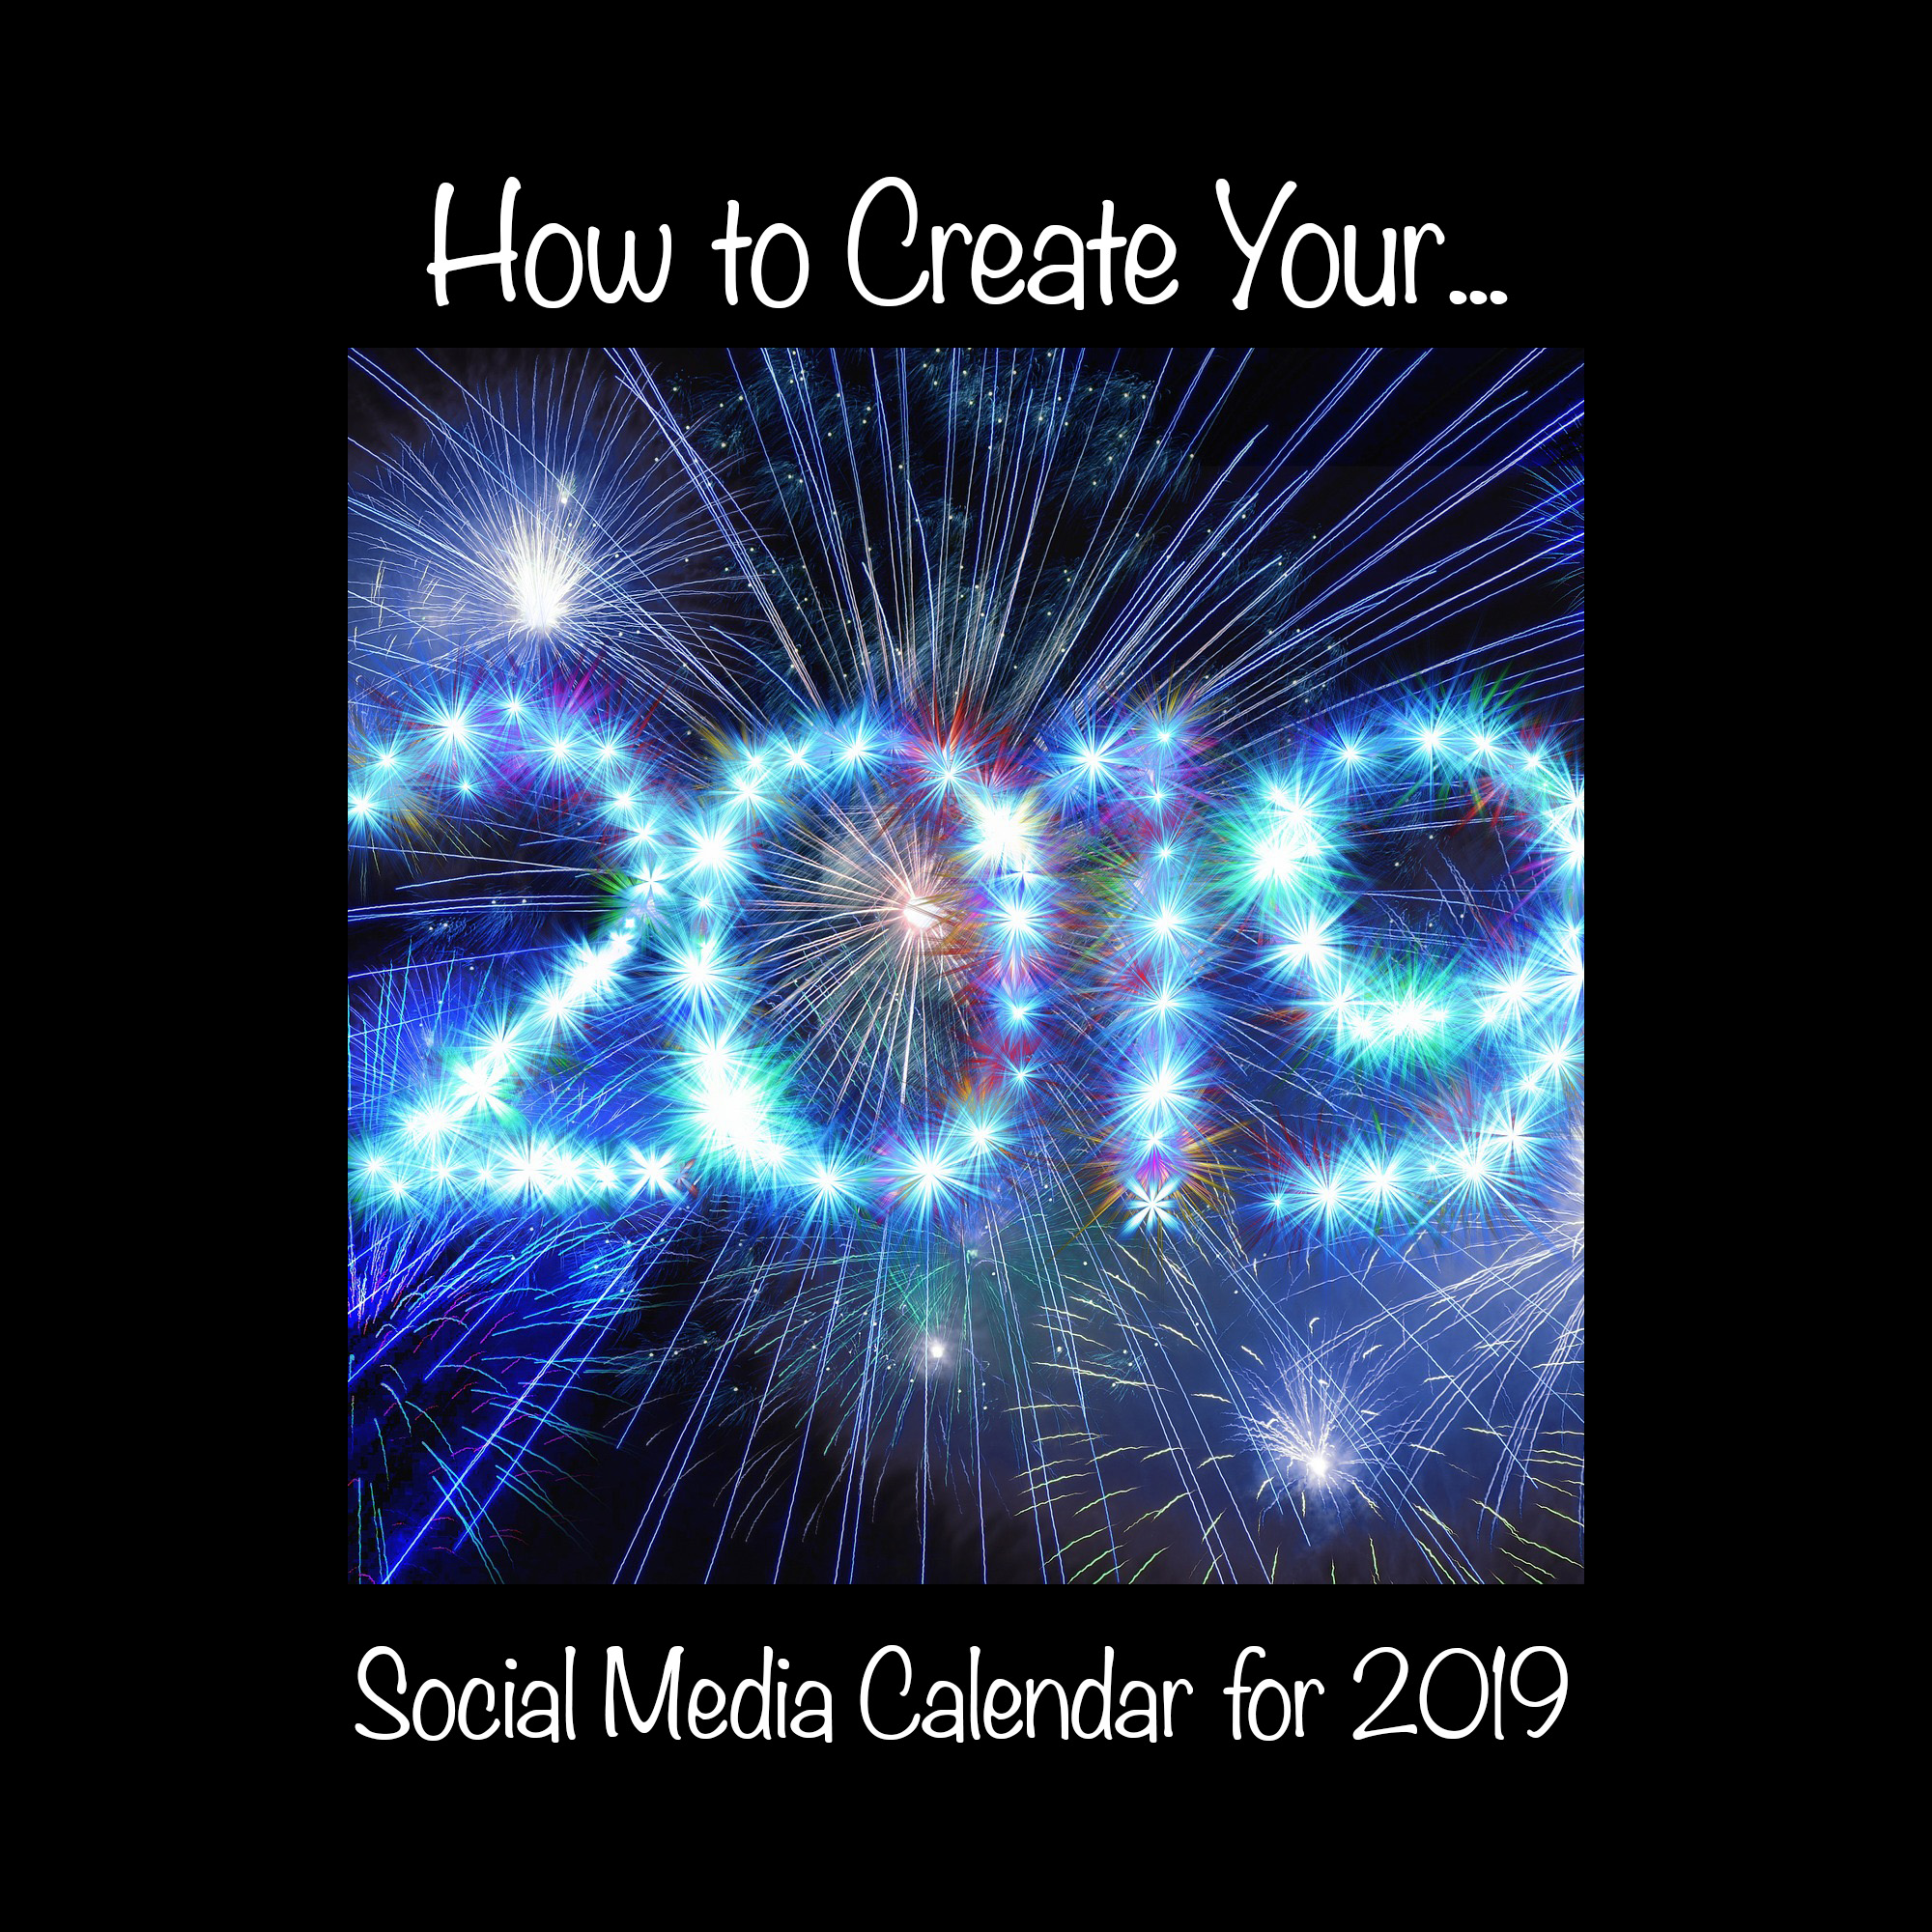 How to Create Your Social Media Calendar for 2019 - Let Me